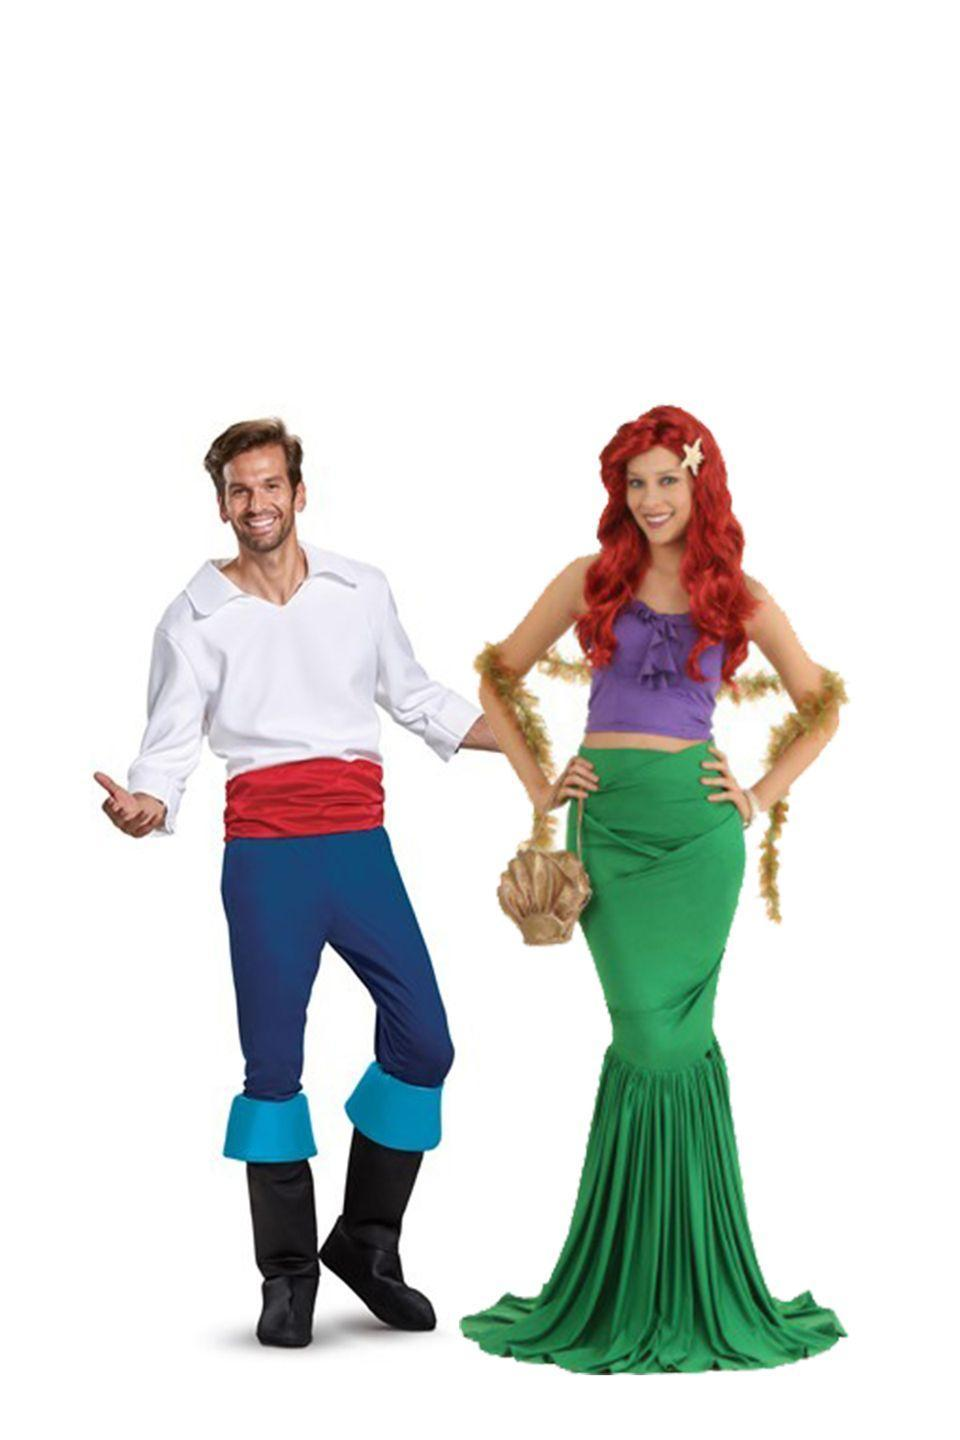 """<p>Dress up like a mystical mermaid for the night with your man by your side in this good-looking getup. Sea witch and loss of voice not included.</p><p><a class=""""link rapid-noclick-resp"""" href=""""https://go.redirectingat.com?id=74968X1596630&url=https%3A%2F%2Fwww.halloweencostumes.com%2Fadult-mermaid-costume.html&sref=https%3A%2F%2Fwww.womansday.com%2Fstyle%2Fg28691602%2Fdisney-couples-costumes%2F"""" rel=""""nofollow noopener"""" target=""""_blank"""" data-ylk=""""slk:SHOP ARIEL COSTUME"""">SHOP ARIEL COSTUME</a></p><p><a class=""""link rapid-noclick-resp"""" href=""""https://go.redirectingat.com?id=74968X1596630&url=https%3A%2F%2Fwww.halloweencostumes.com%2Fprince-eric-deluxe-adult.html&sref=https%3A%2F%2Fwww.womansday.com%2Fstyle%2Fg28691602%2Fdisney-couples-costumes%2F"""" rel=""""nofollow noopener"""" target=""""_blank"""" data-ylk=""""slk:SHOP PRINCE ERIC COSTUME"""">SHOP PRINCE ERIC COSTUME</a> </p>"""